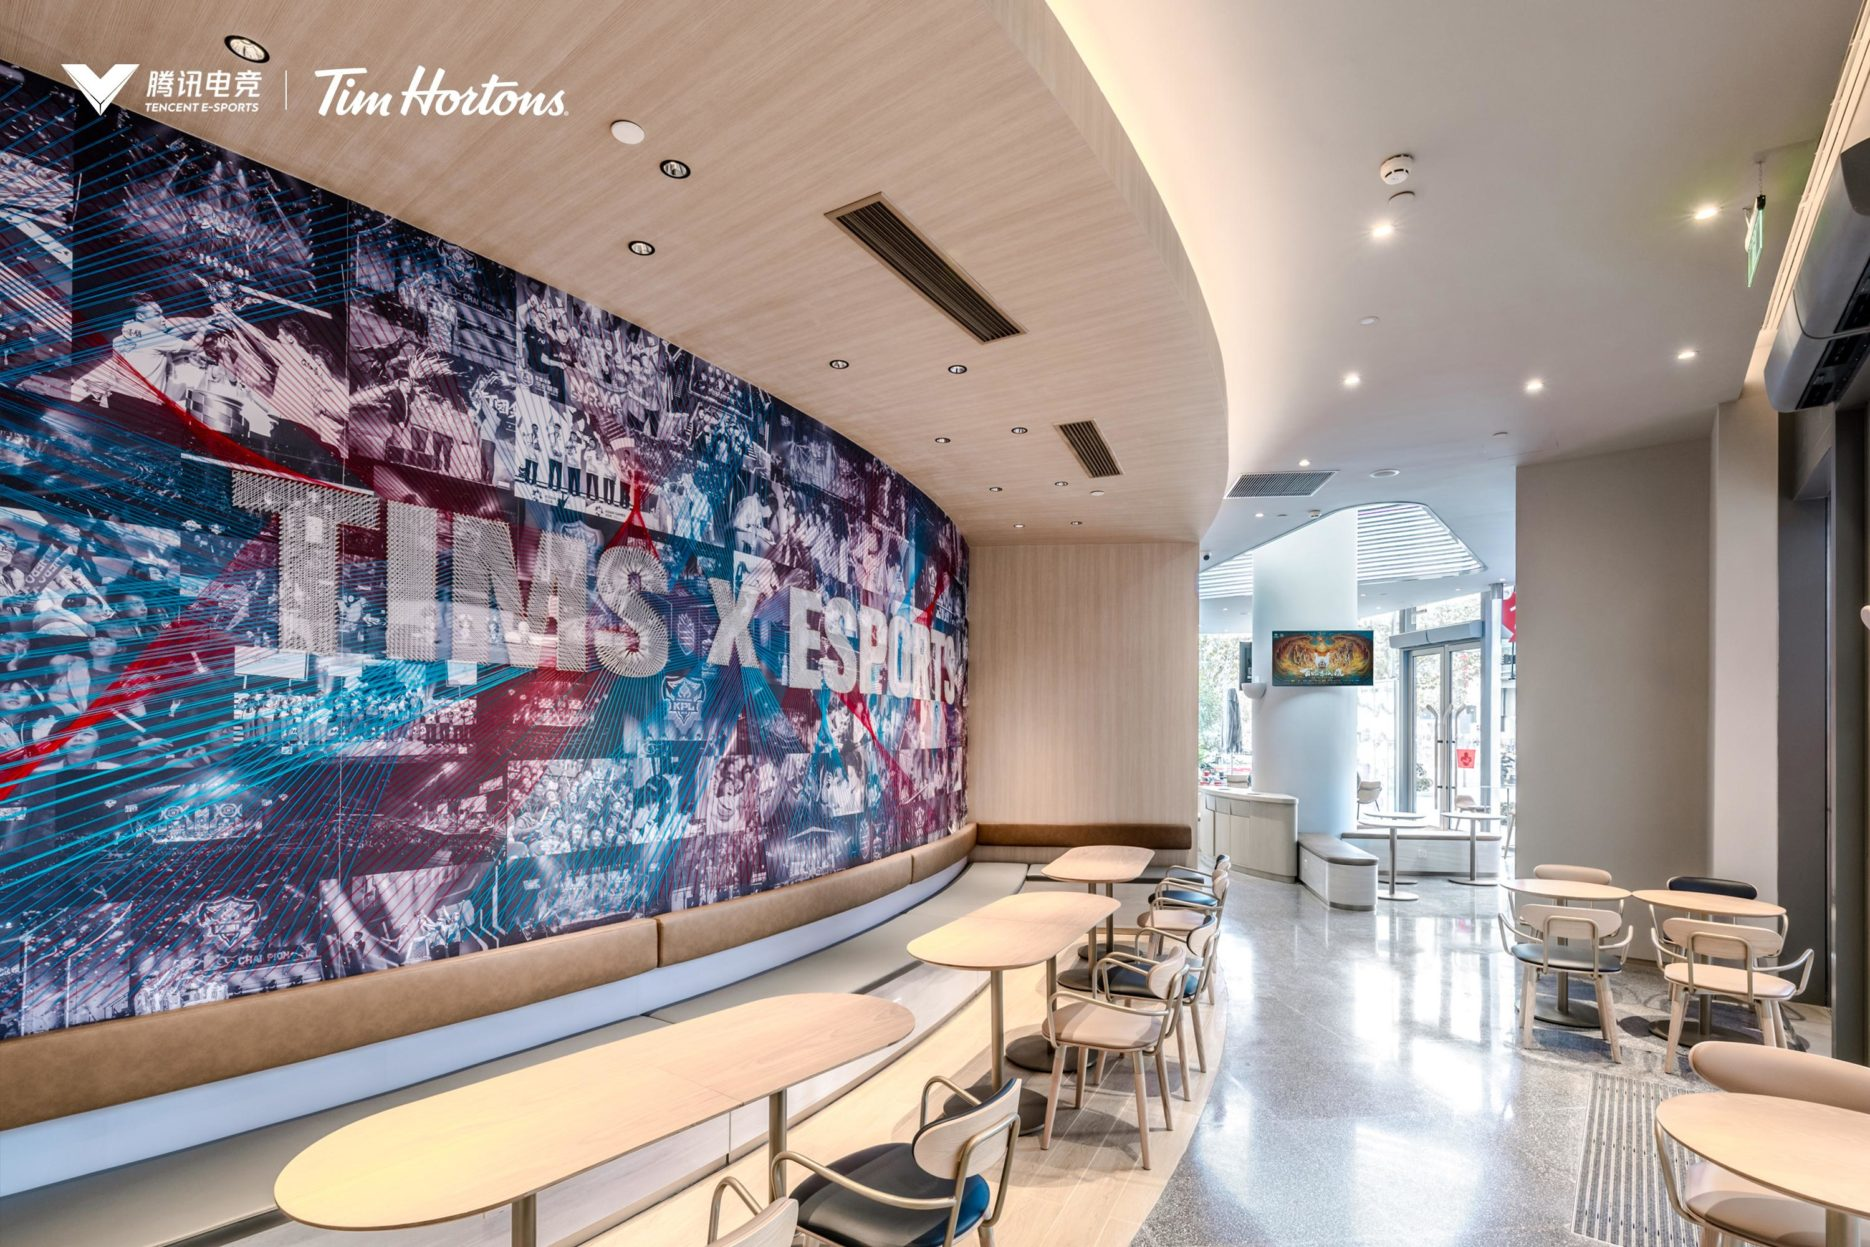 Tencent's esports cafe with Tim Hortons